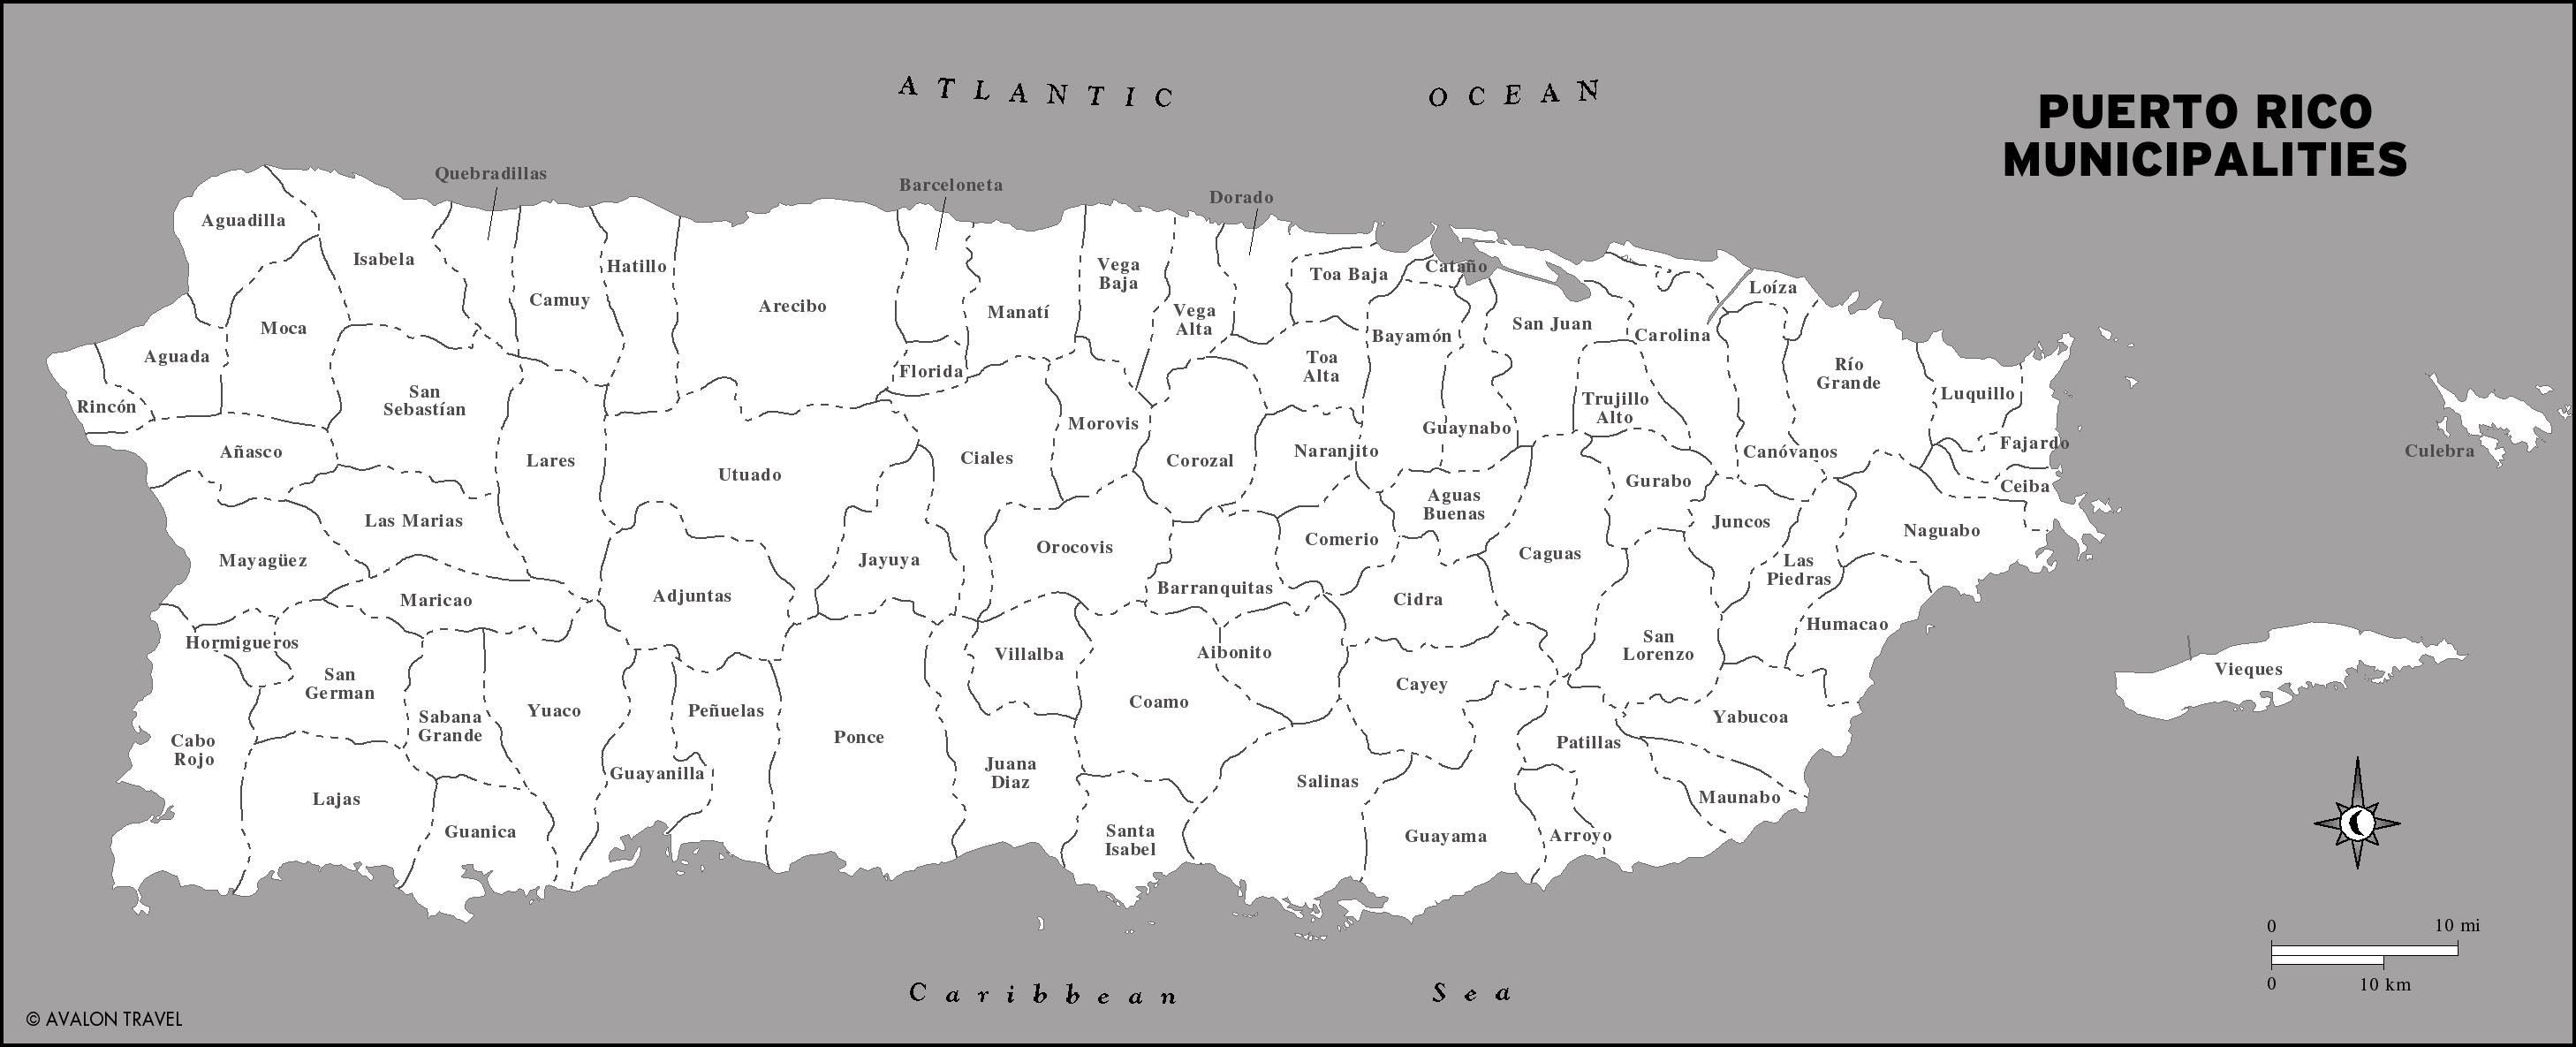 photograph relating to Printable Maps of Puerto Rico referred to as Puerto Rico Schooling Puerto rico map, Puerto rico, Map